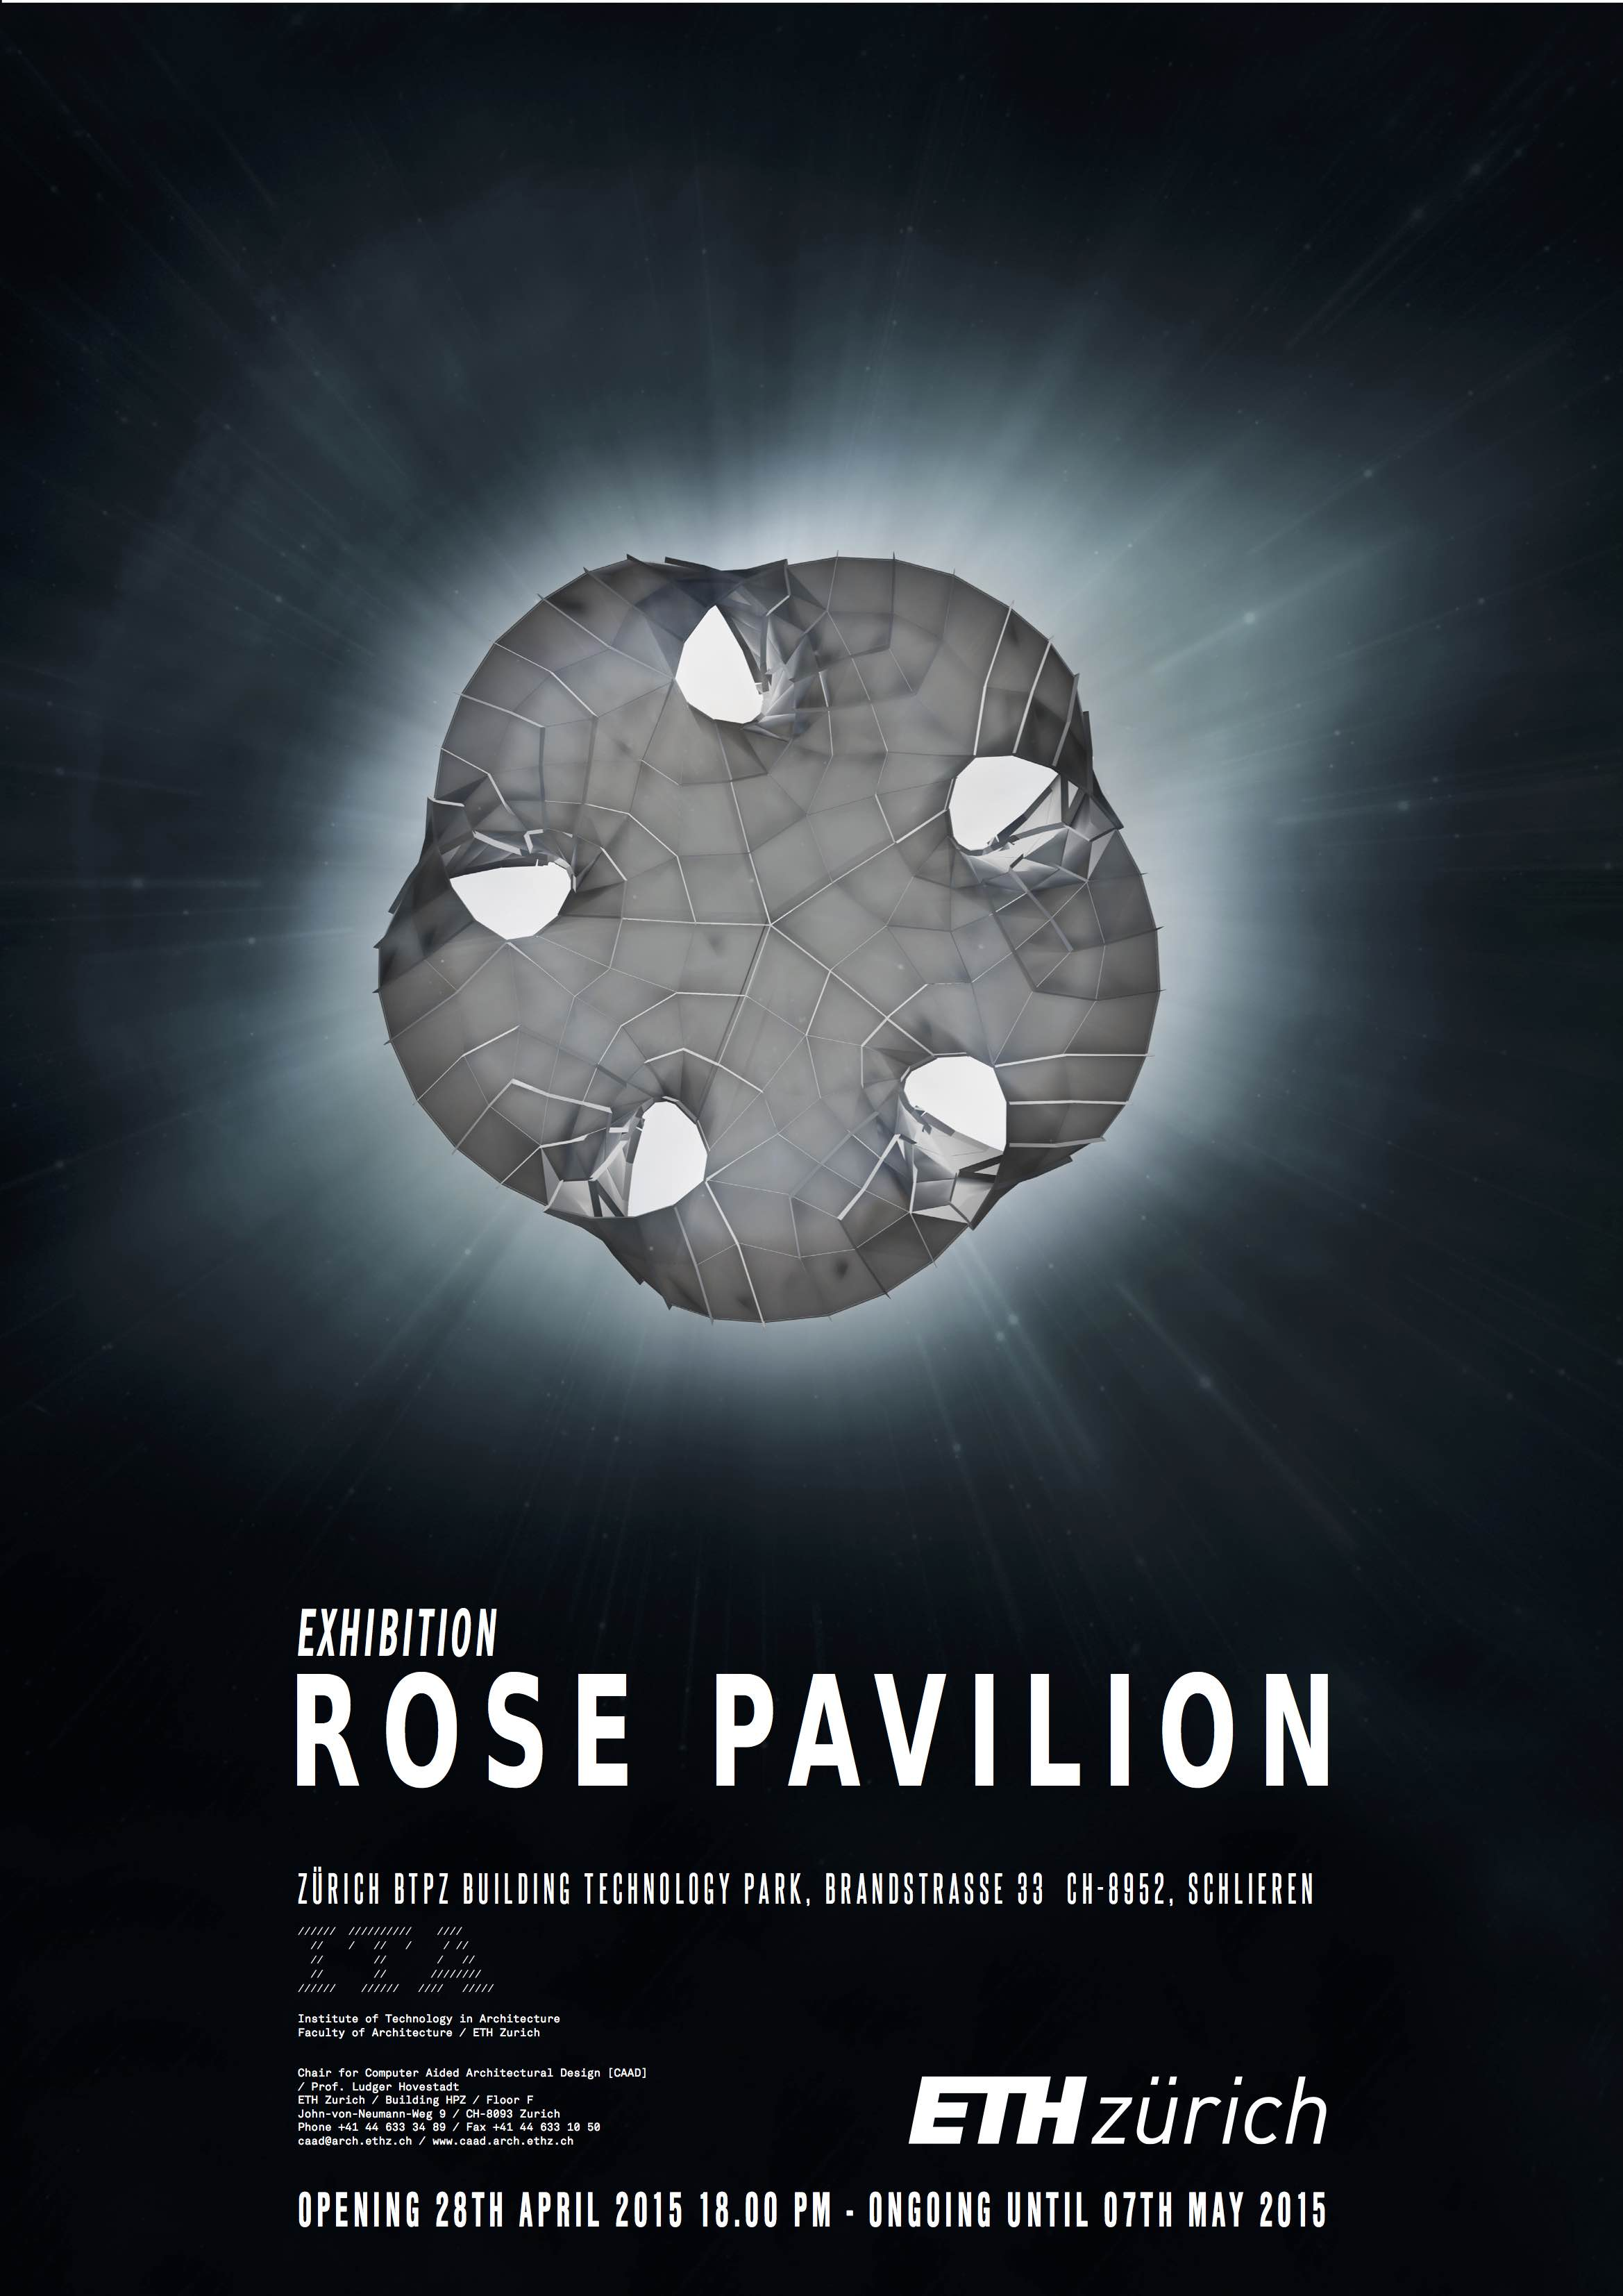 rose_pavilion_exhibition